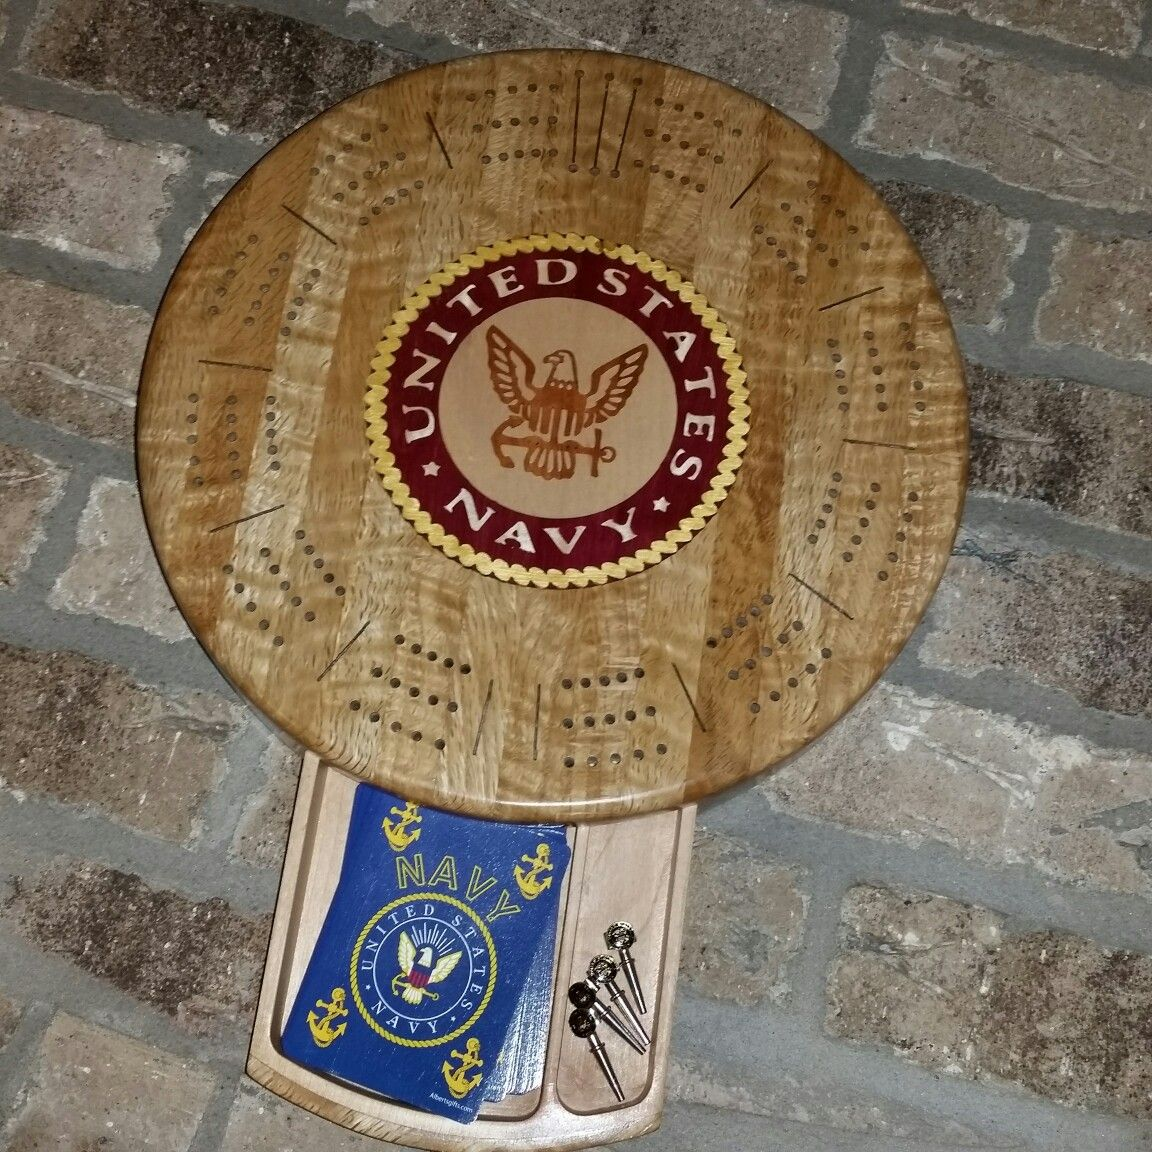 Round cribbage board with inlaid US Navy logo, designed in